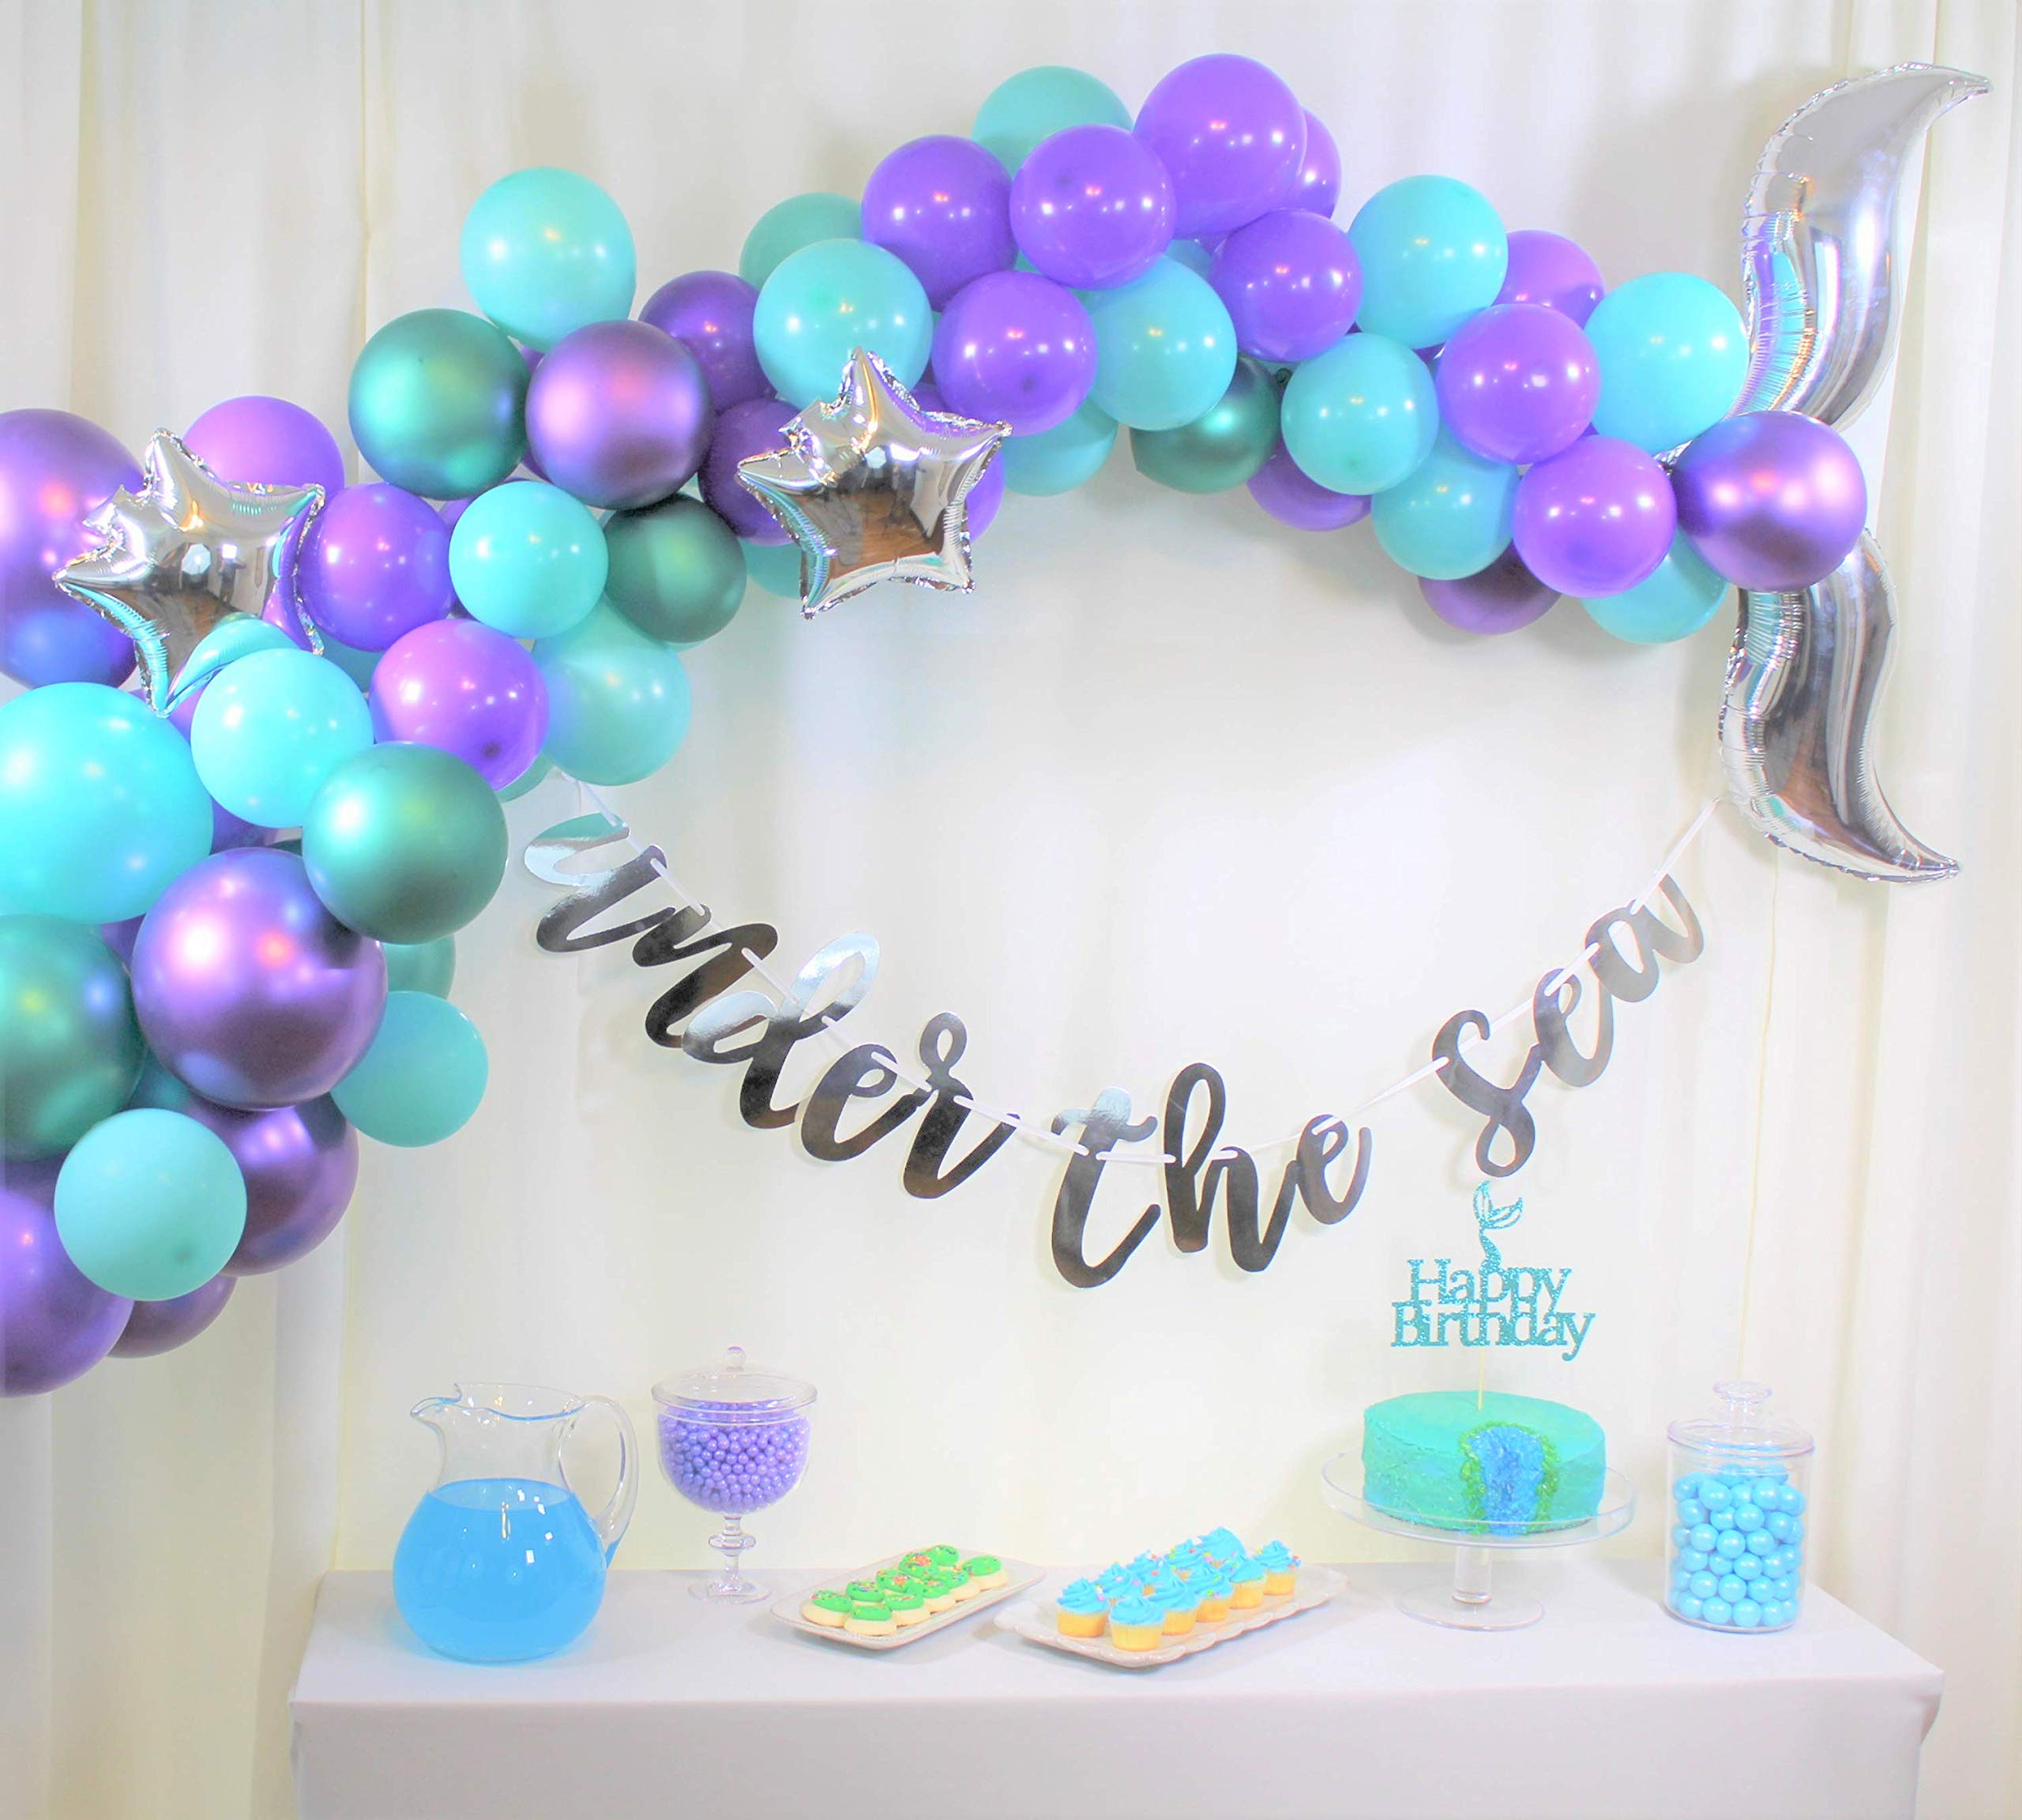 Qutechat Mermaid Tail Balloons Arch Garland Kit - Ocean Themed Party Decorations, Supplies - Teal, Purple Balloon Decor, Cake Topper, Under the Sea Banner, Glue Dots - DIY Decorating Set for Birthdays